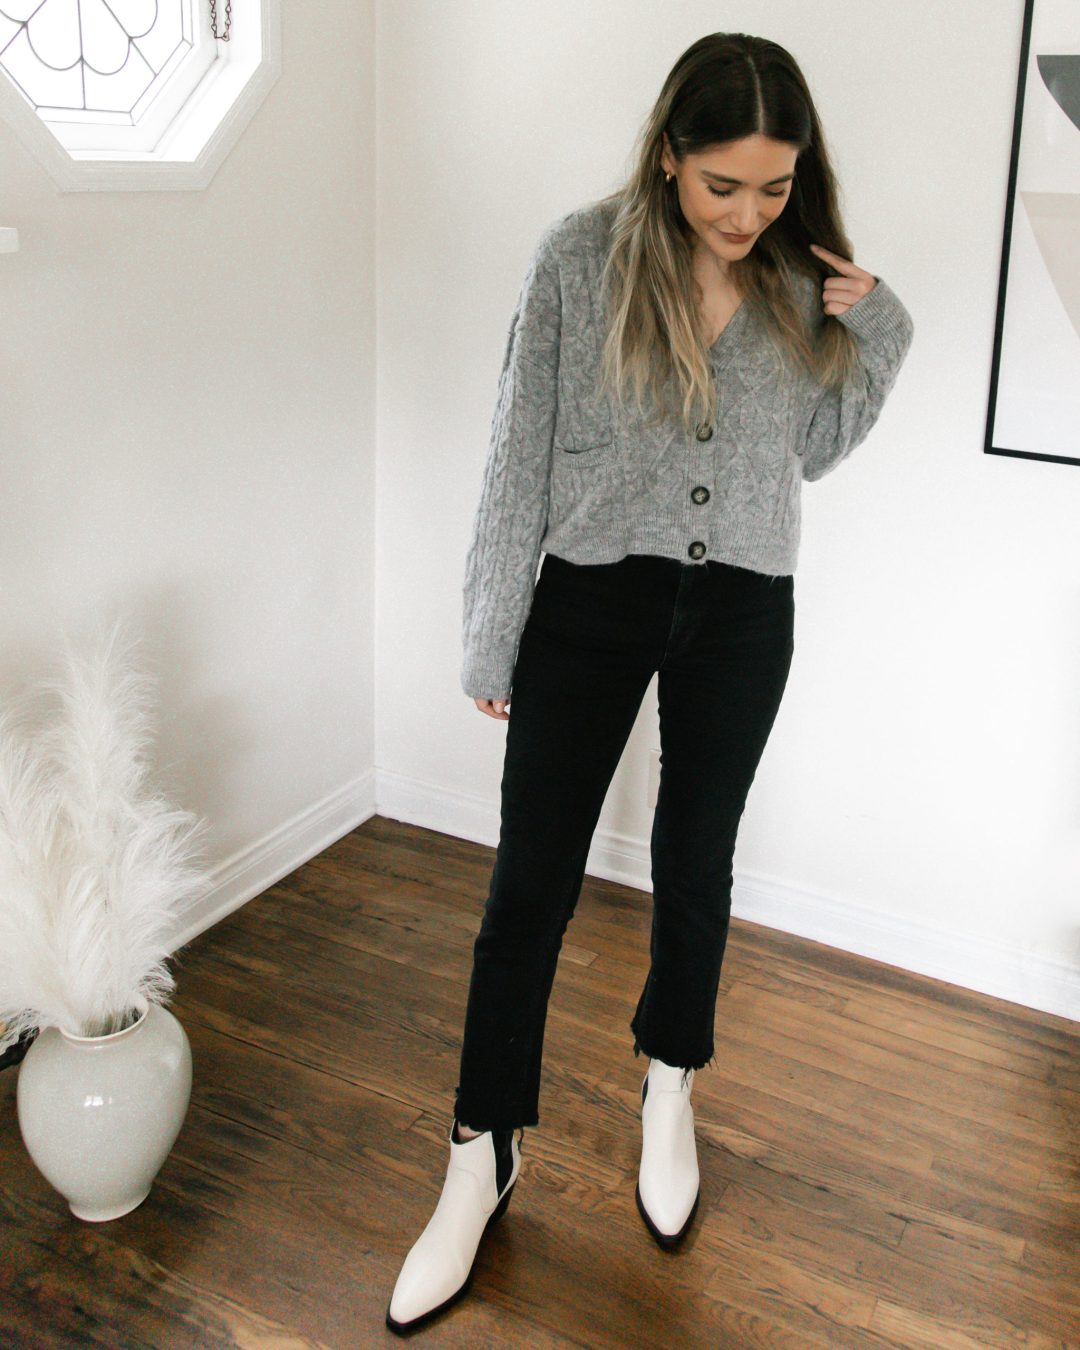 Cozy Cropped Cardigan for Winter | Twinspiration